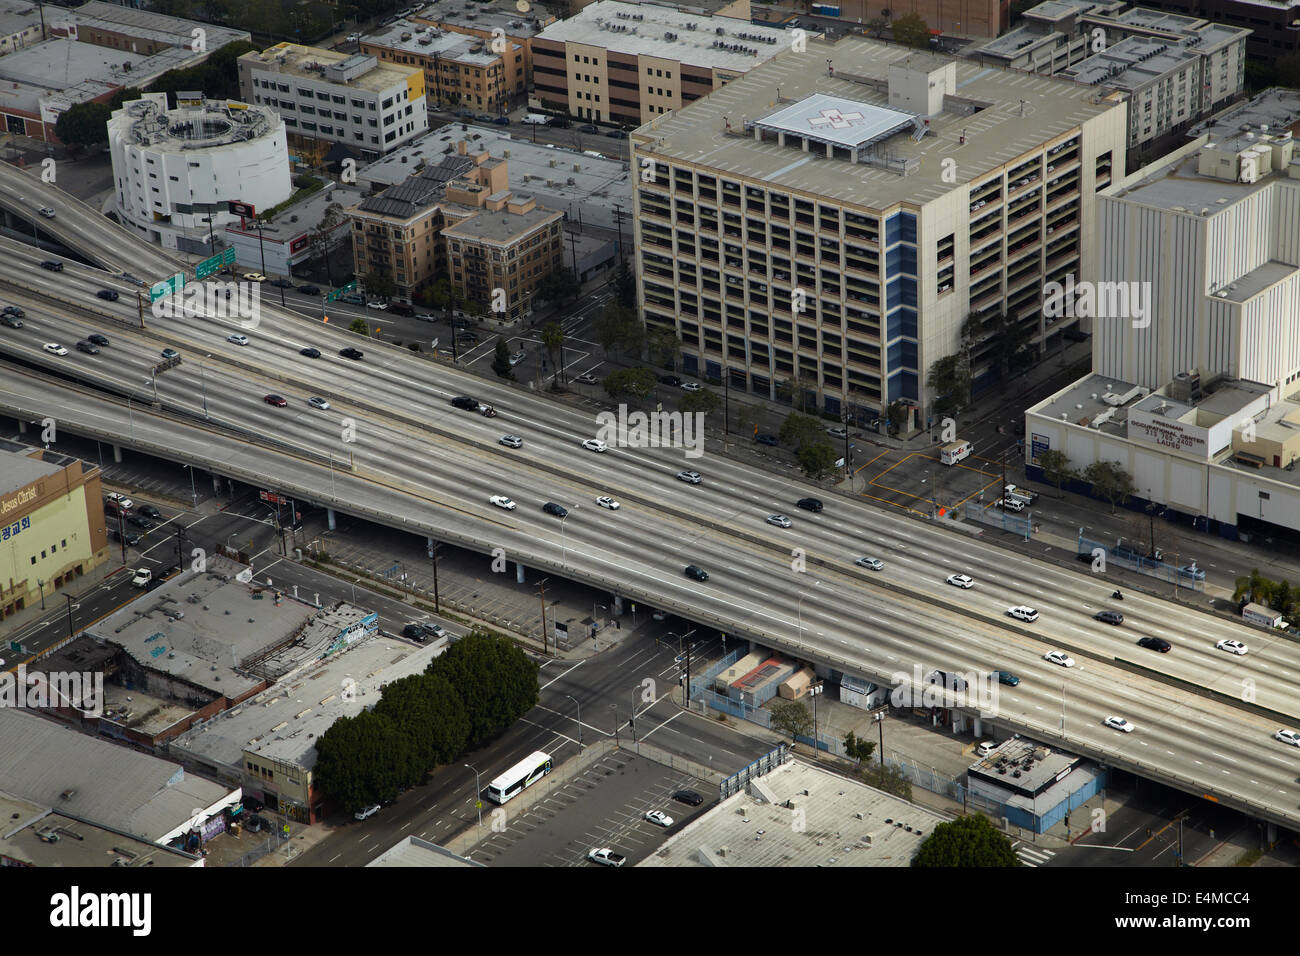 Santa monica freeeway interstate 10 i 10 near downtown los santa monica freeeway interstate 10 i 10 near downtown los angeles california usa aerial sciox Choice Image